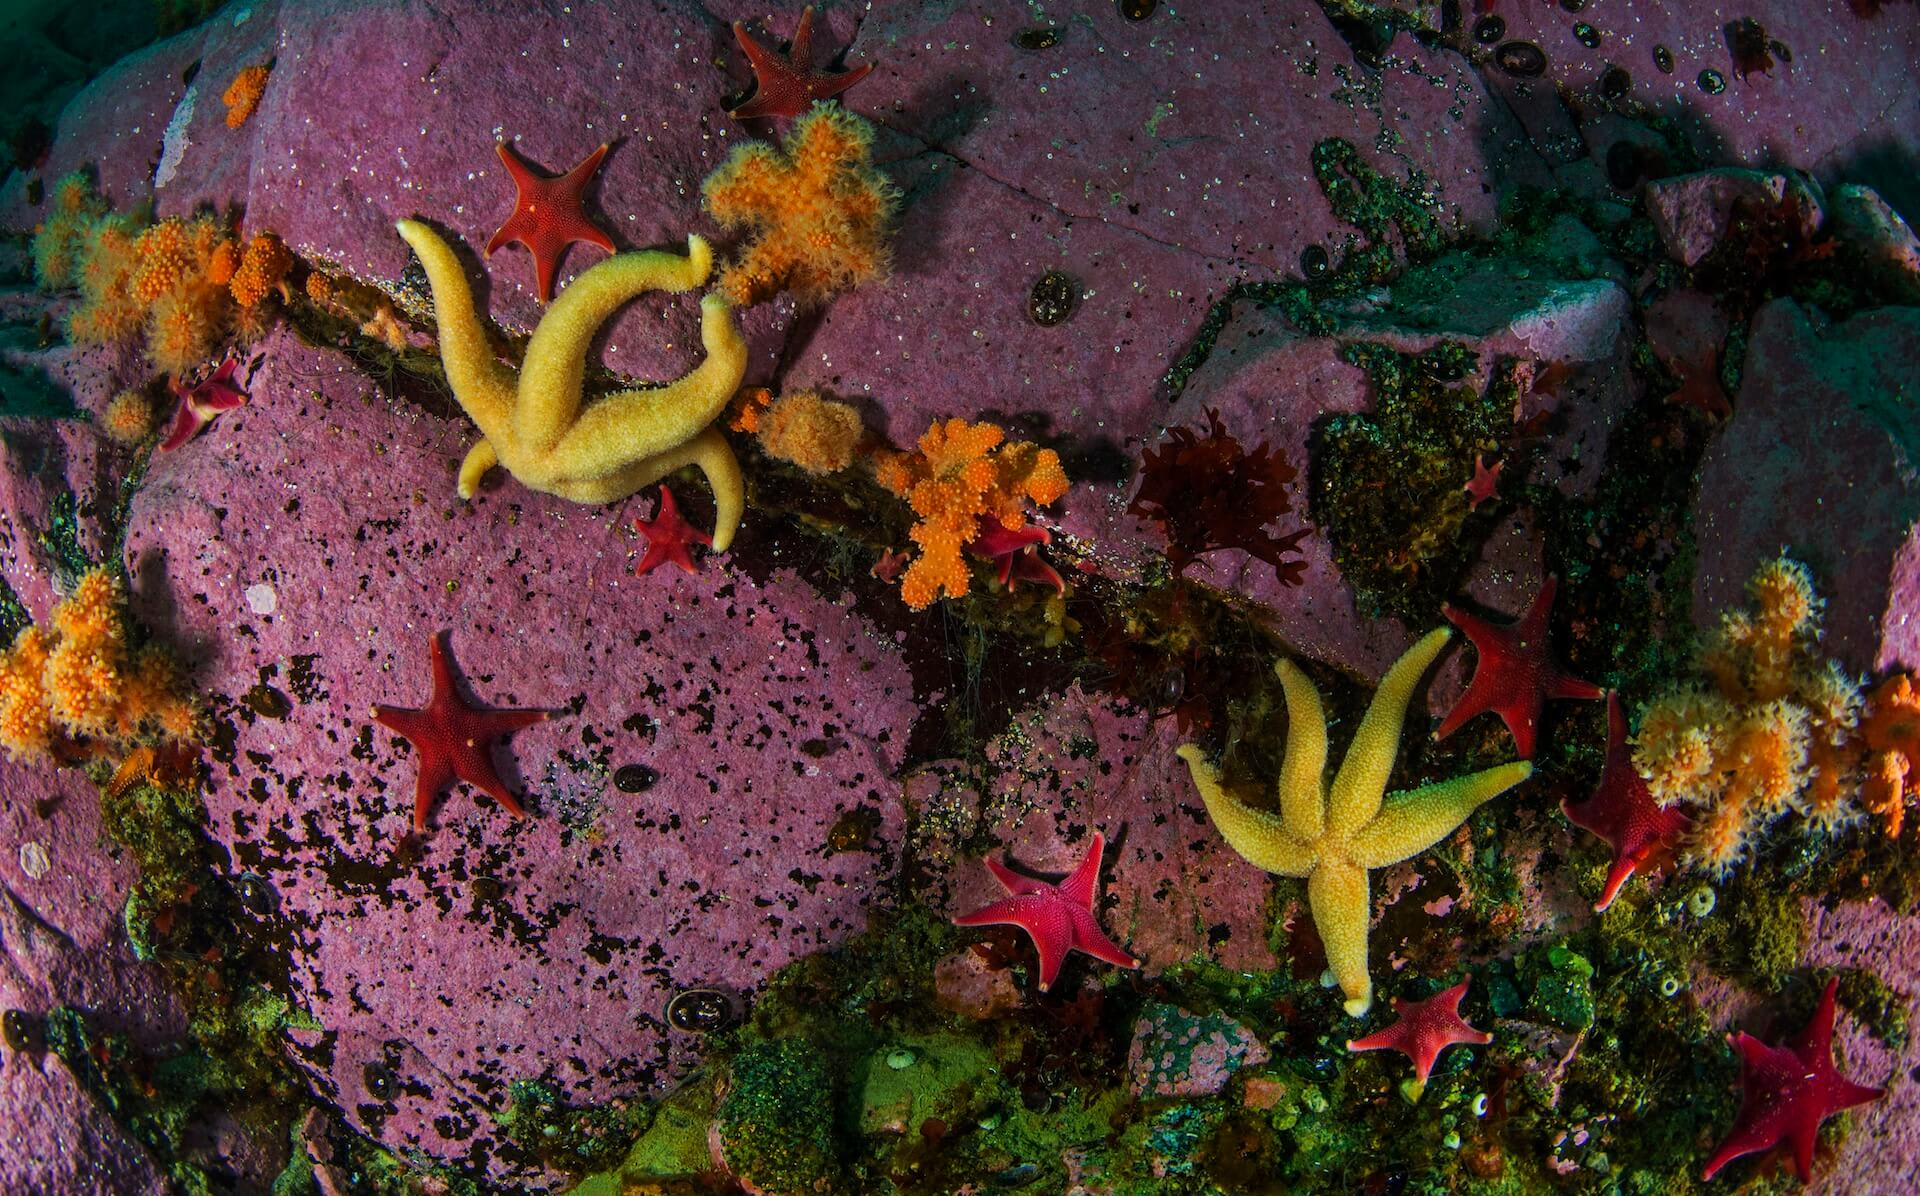 About ten metres below the surface, the landscape changes significantly. On vertical rock slopes and crevices between the rock, colourful marine life thrives amidst moss and kelp. The most abundant of these are starfish, anemones, and nudibranchs.